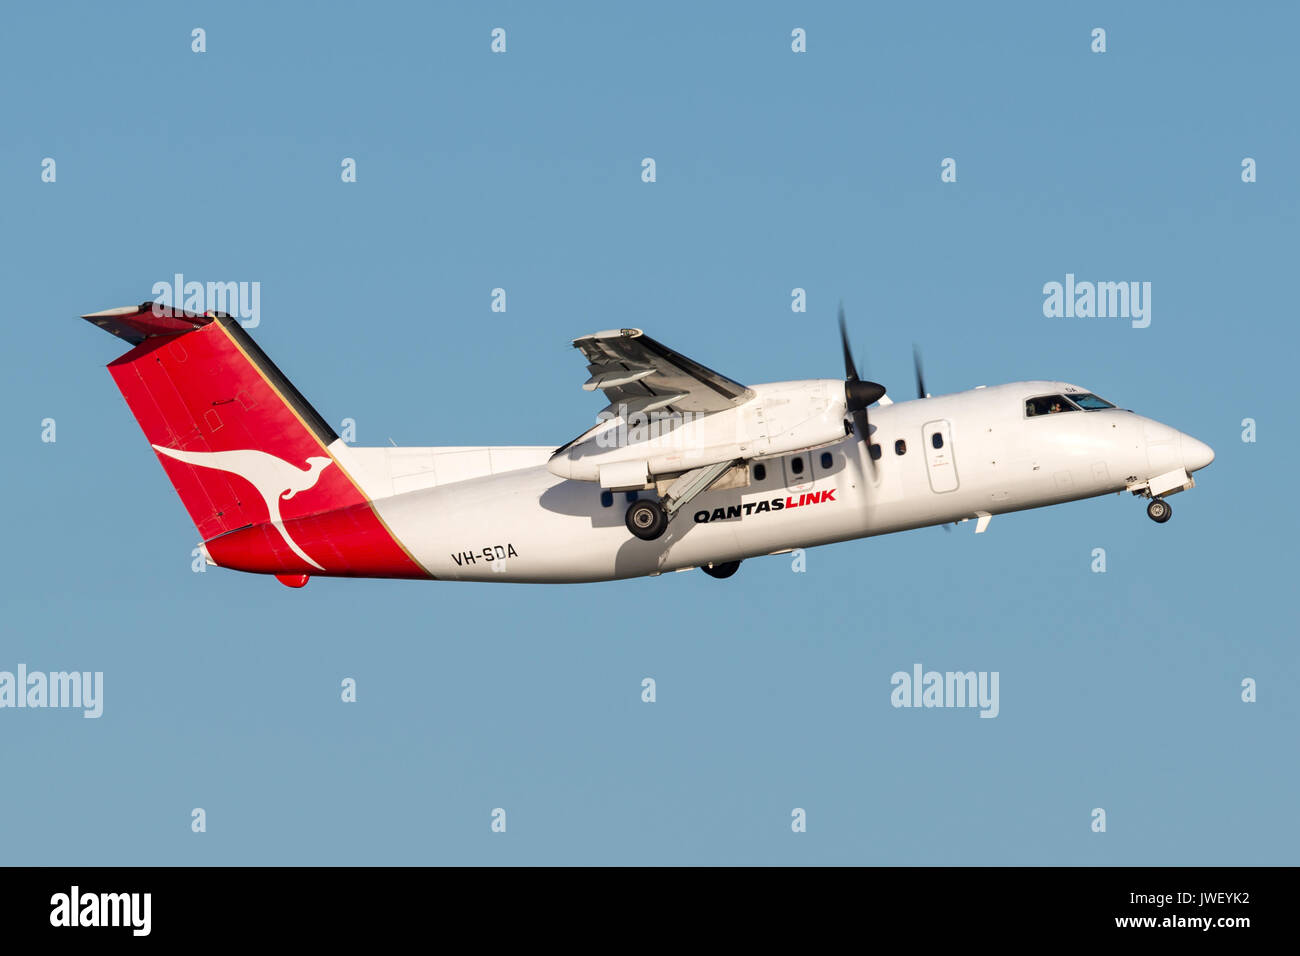 QantasLink (Qantas) deHavilland DHC-8 (Dash 8) twin engined regional airliner aircraft departing Sydney Airport. Stock Photo